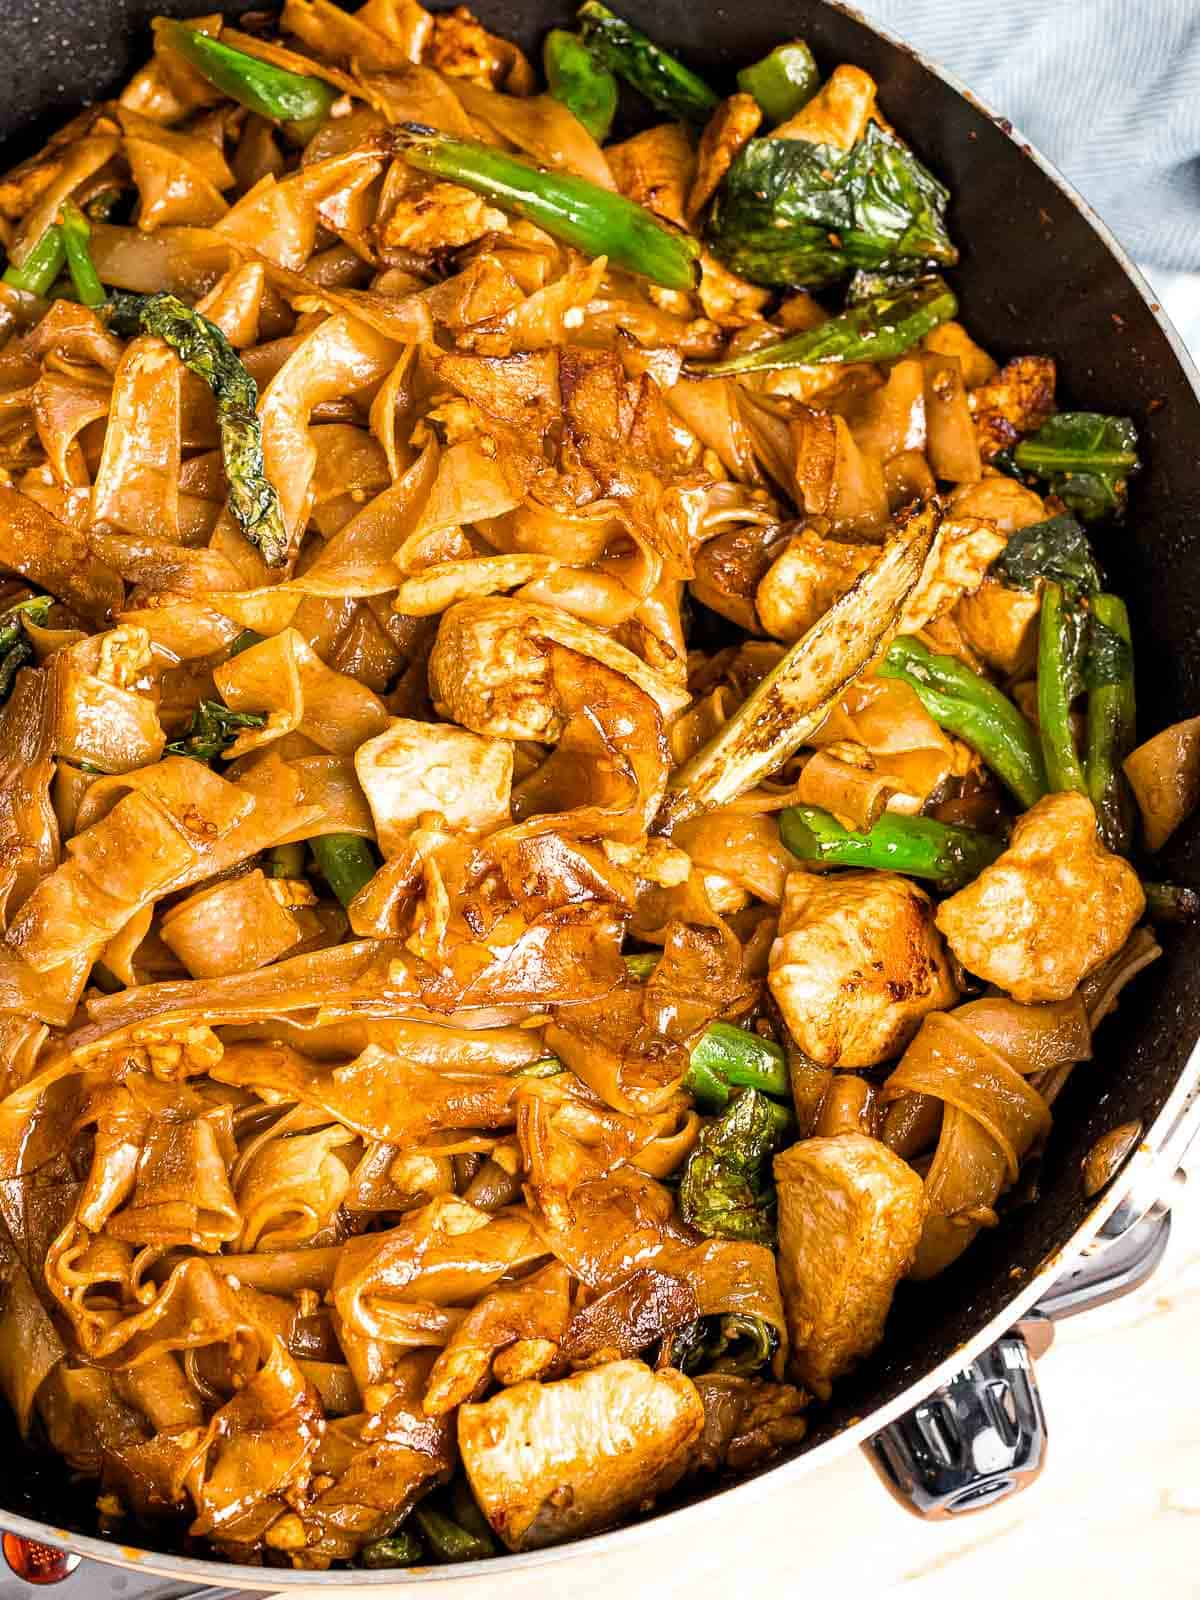 Perfectly cooked pad see ew with slightly caramelized noodles and charring.